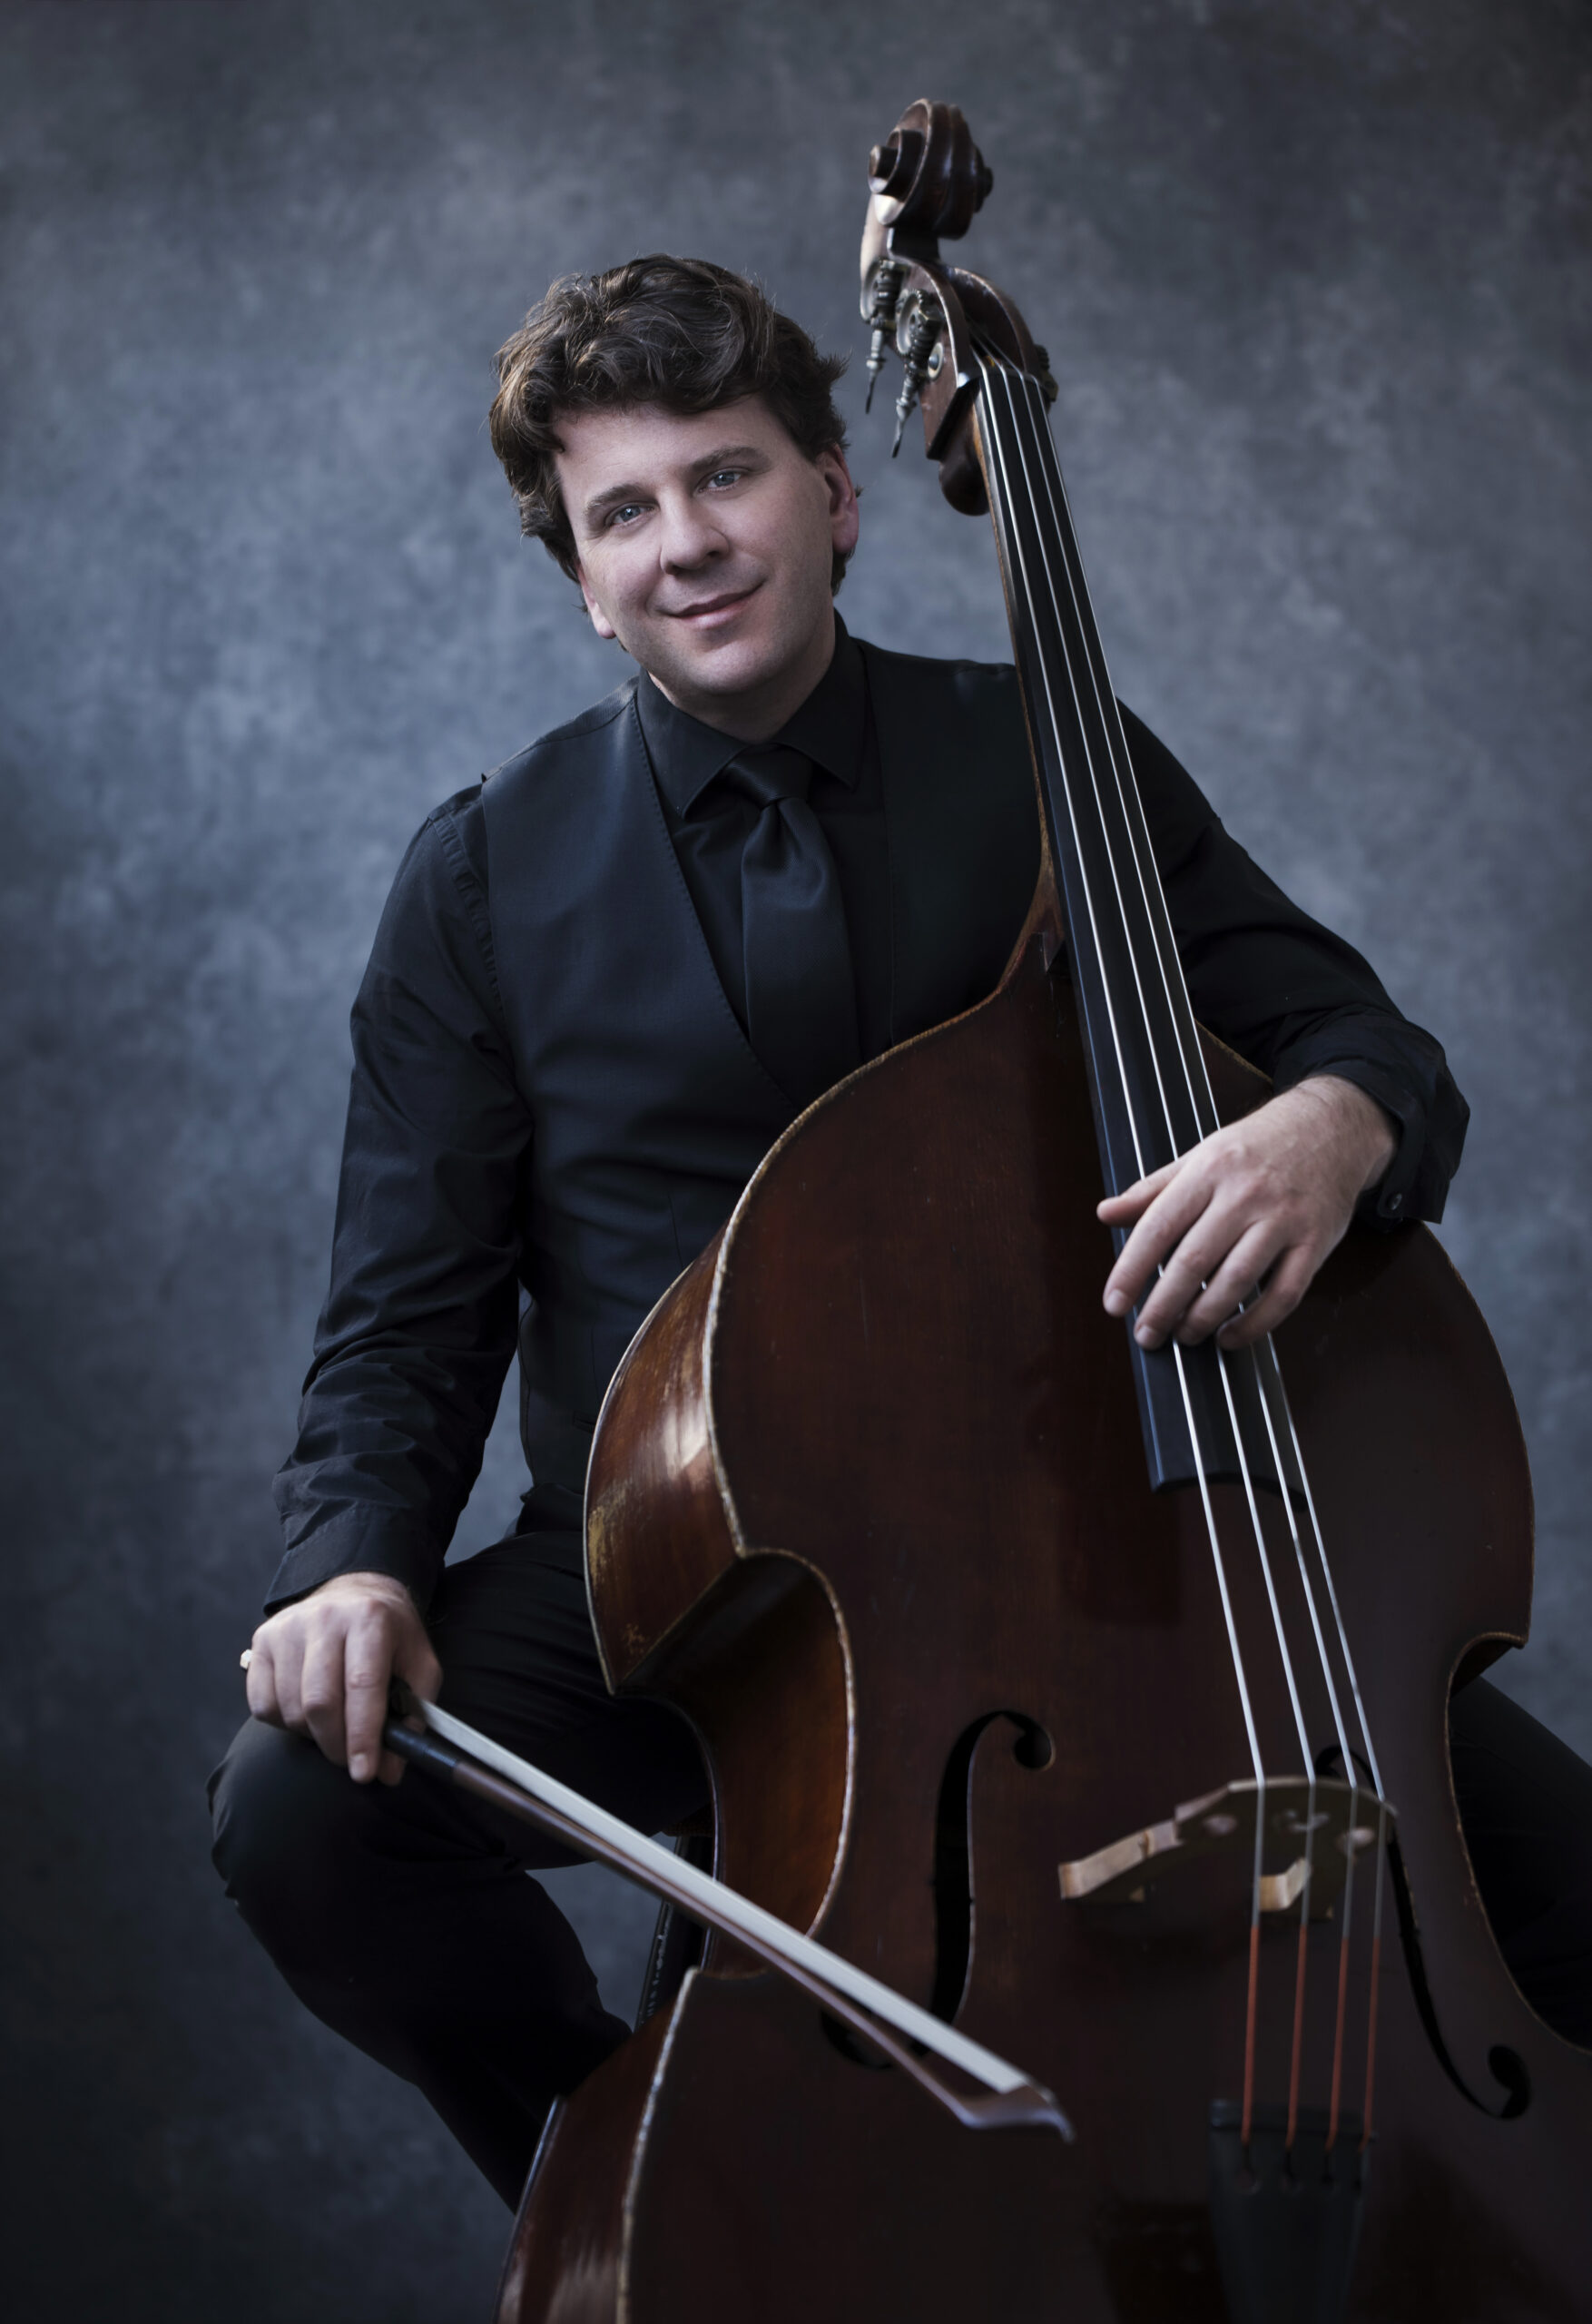 Dominic seldis with bass by frank ruiter kopie